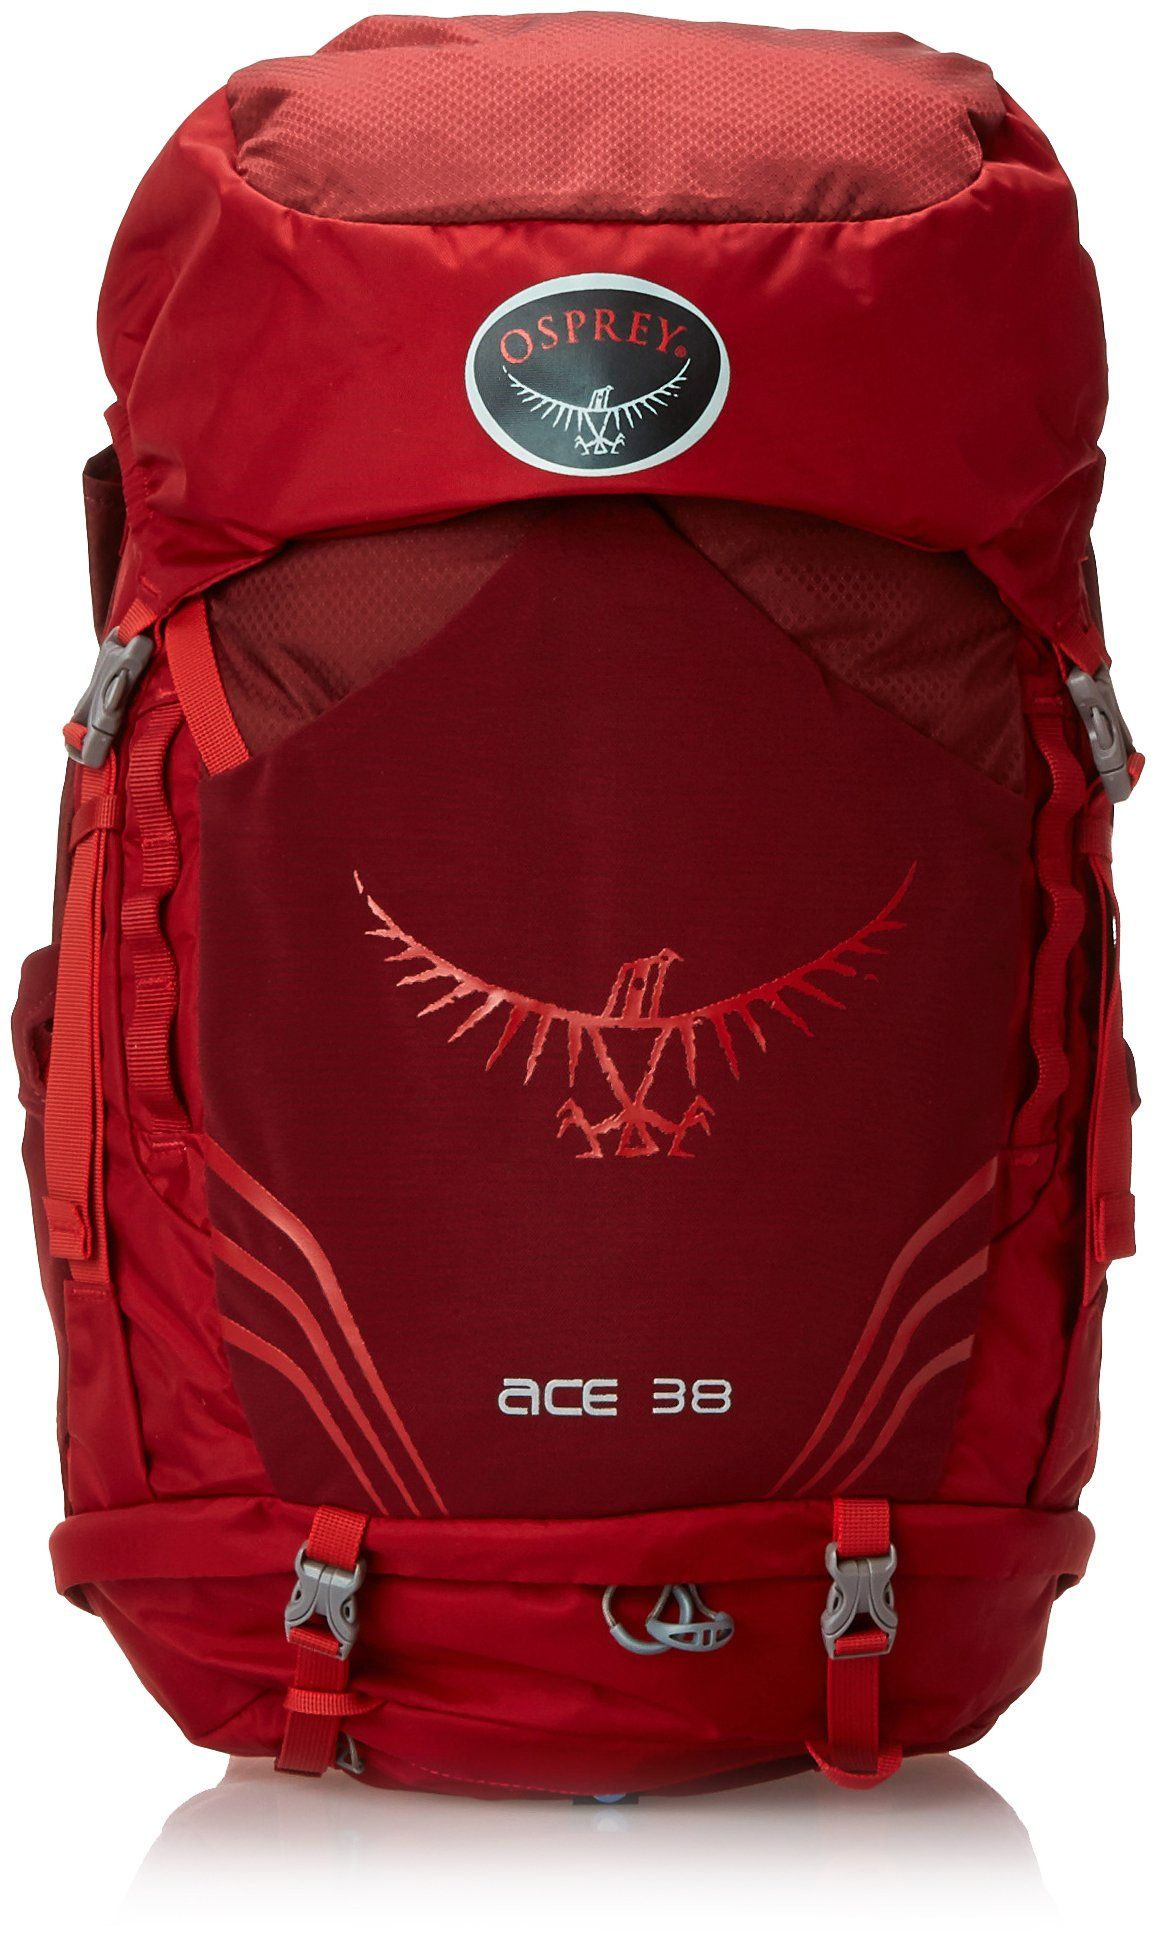 Osprey Youth Ace 38 Backpack Paprika Red e Size